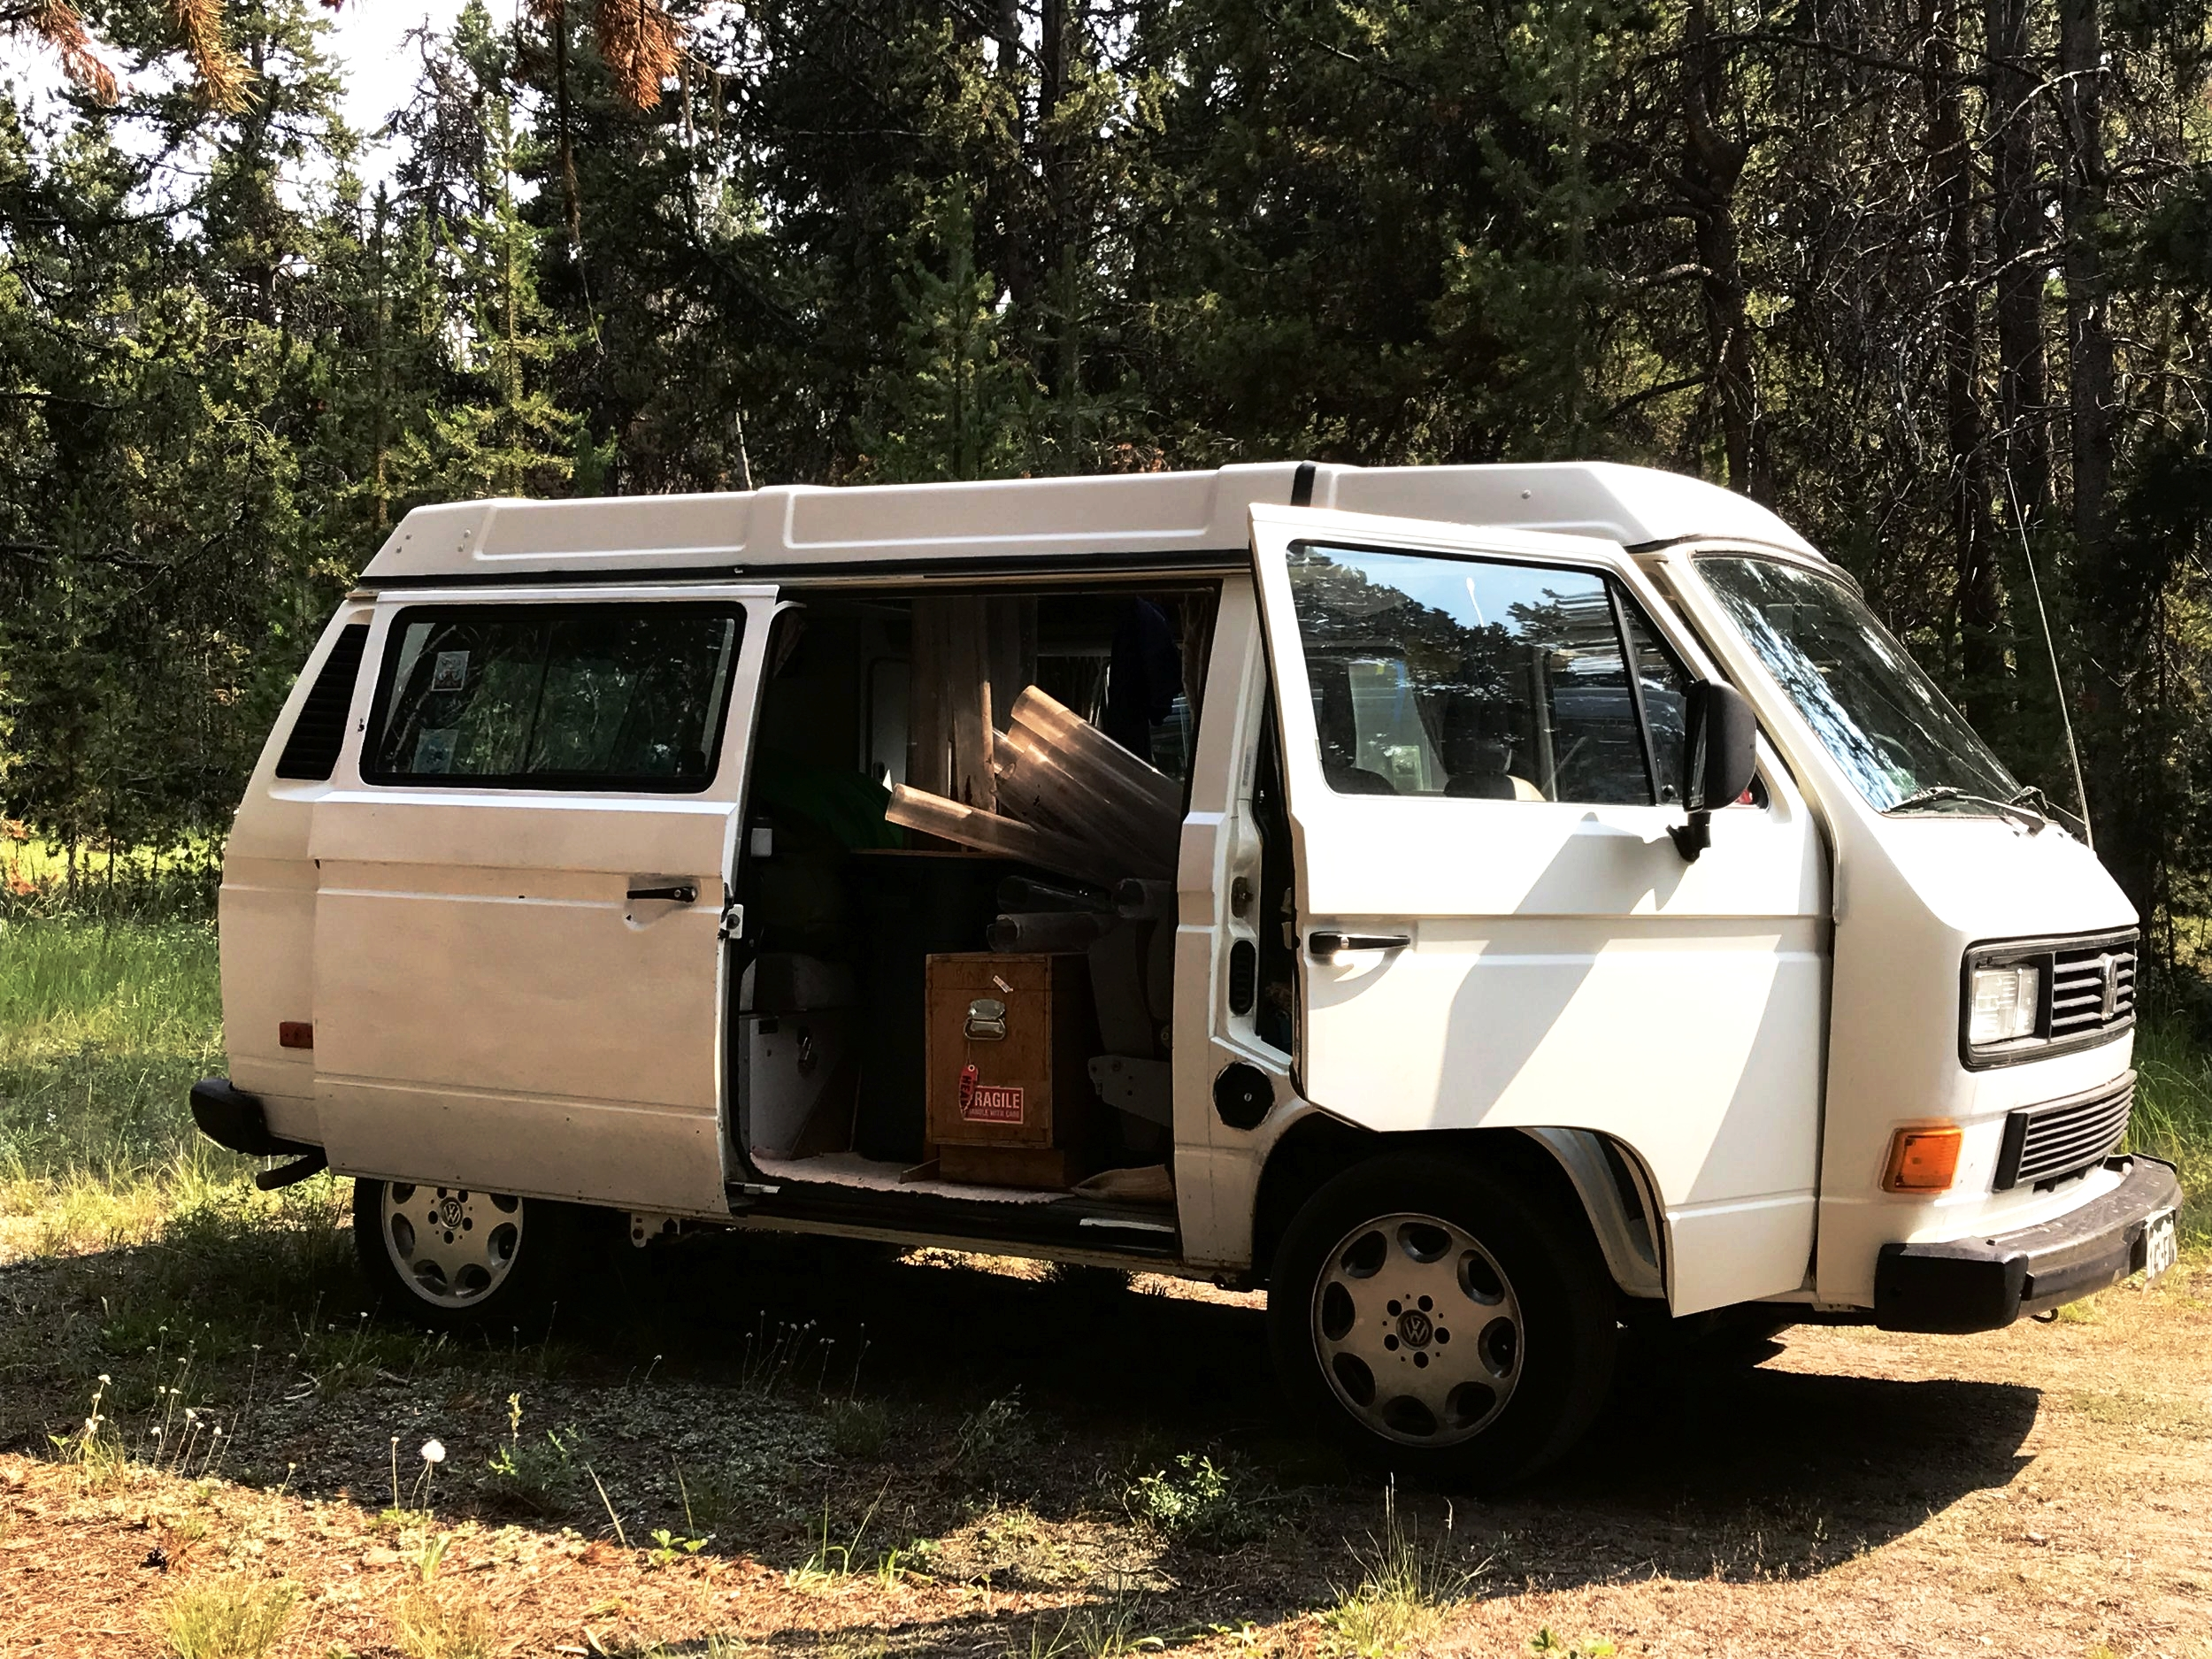 Pat Shanks' trusty research van, complete with a bouquet of sediment core liners and gravity coring apparatuses.